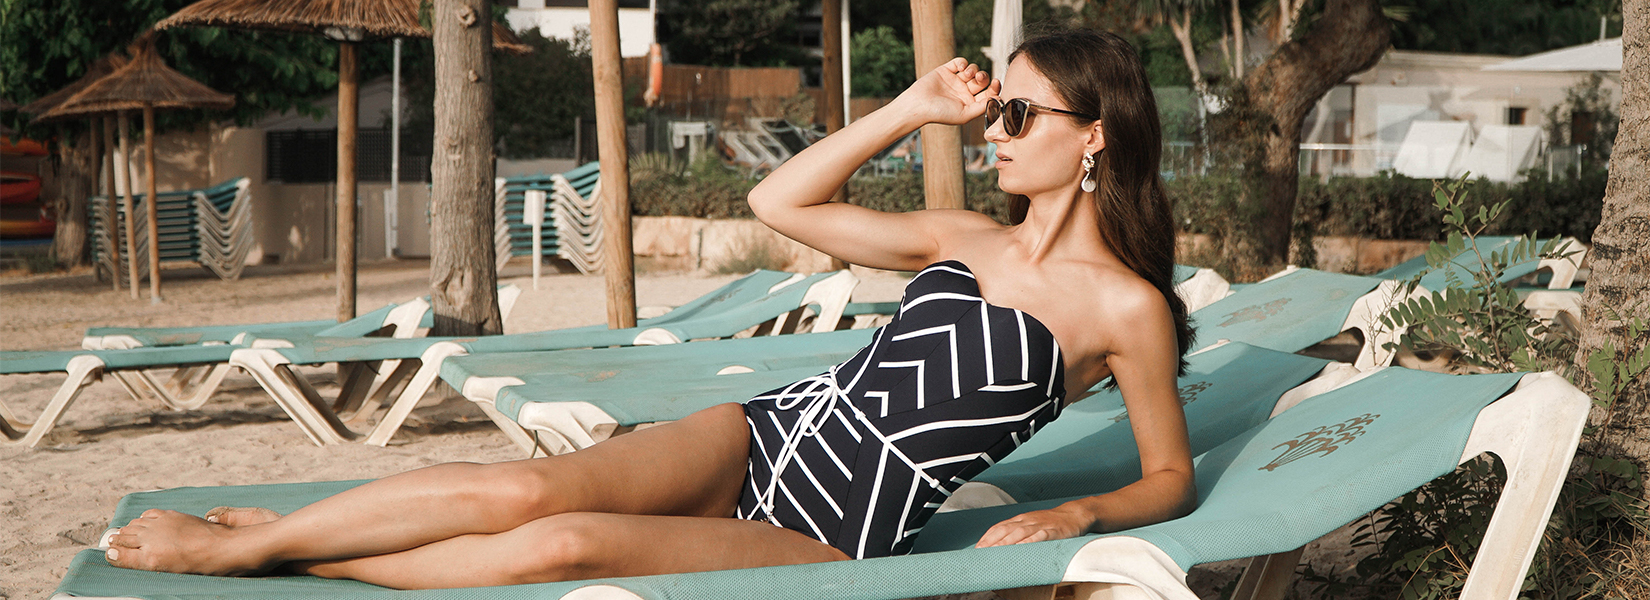 Lookbook: 3 Late Summer Outfits For  Your September Getaway